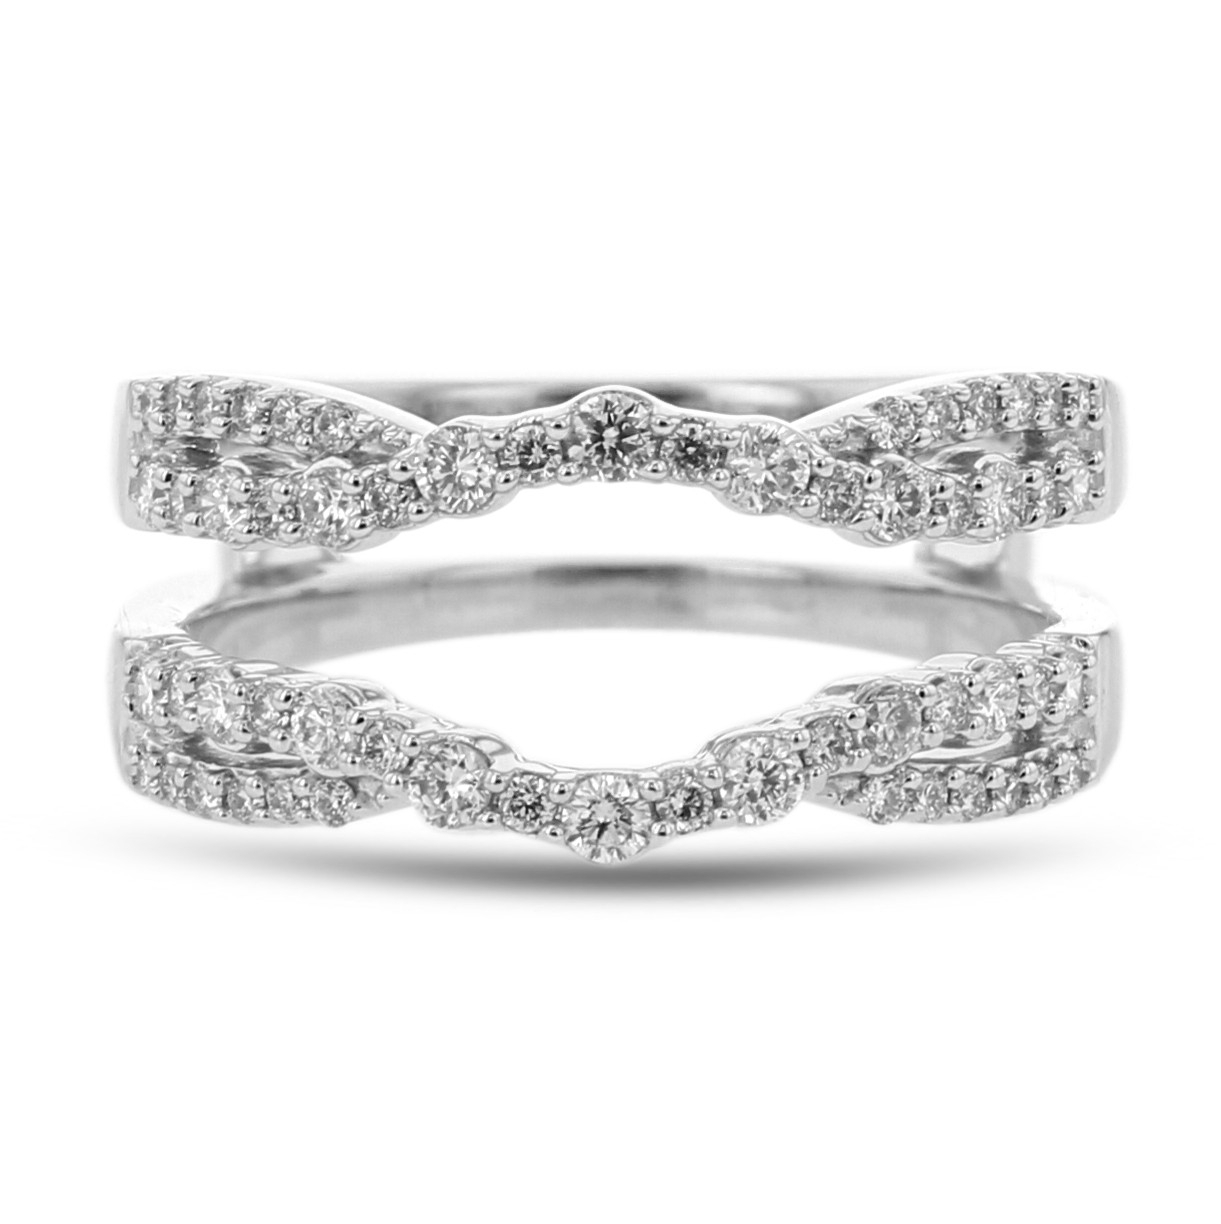 Diamond Cradle Wedding Band, Ring Enhancer, Curved Twist, 14k White Gold, (View 6 of 25)